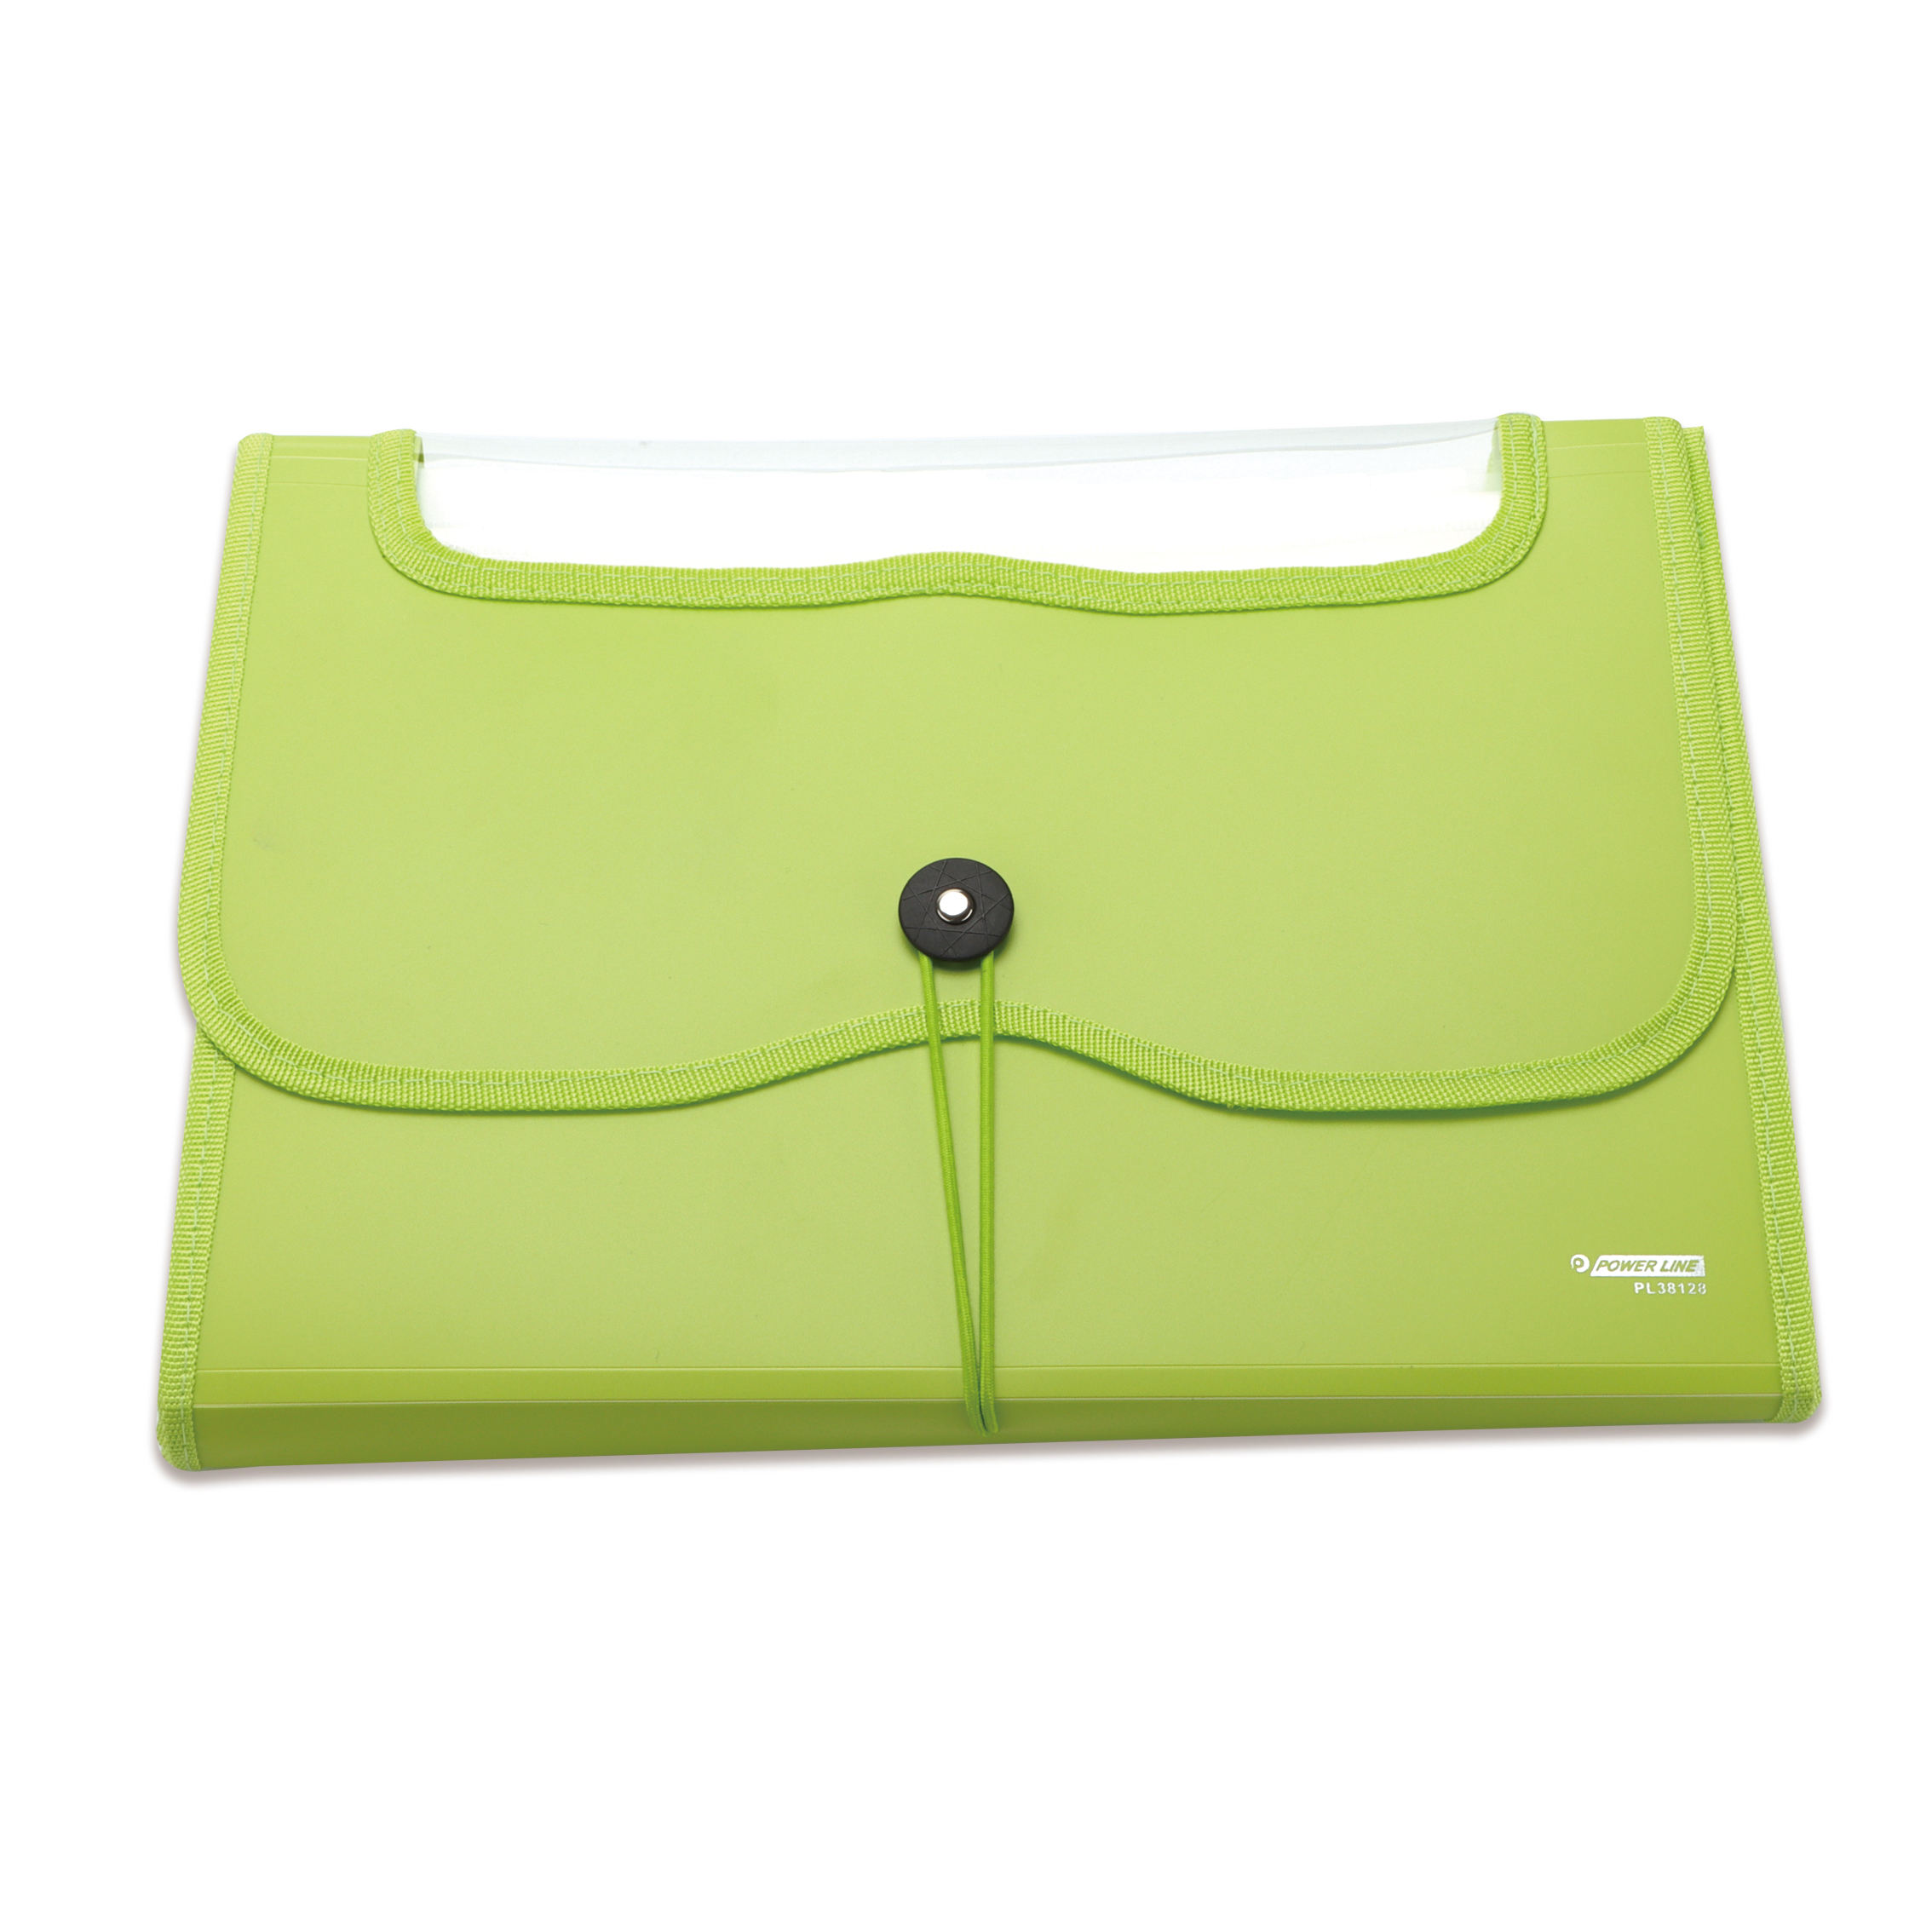 Deoi shanghai new arrival PP material High grade file folder expanding jacket